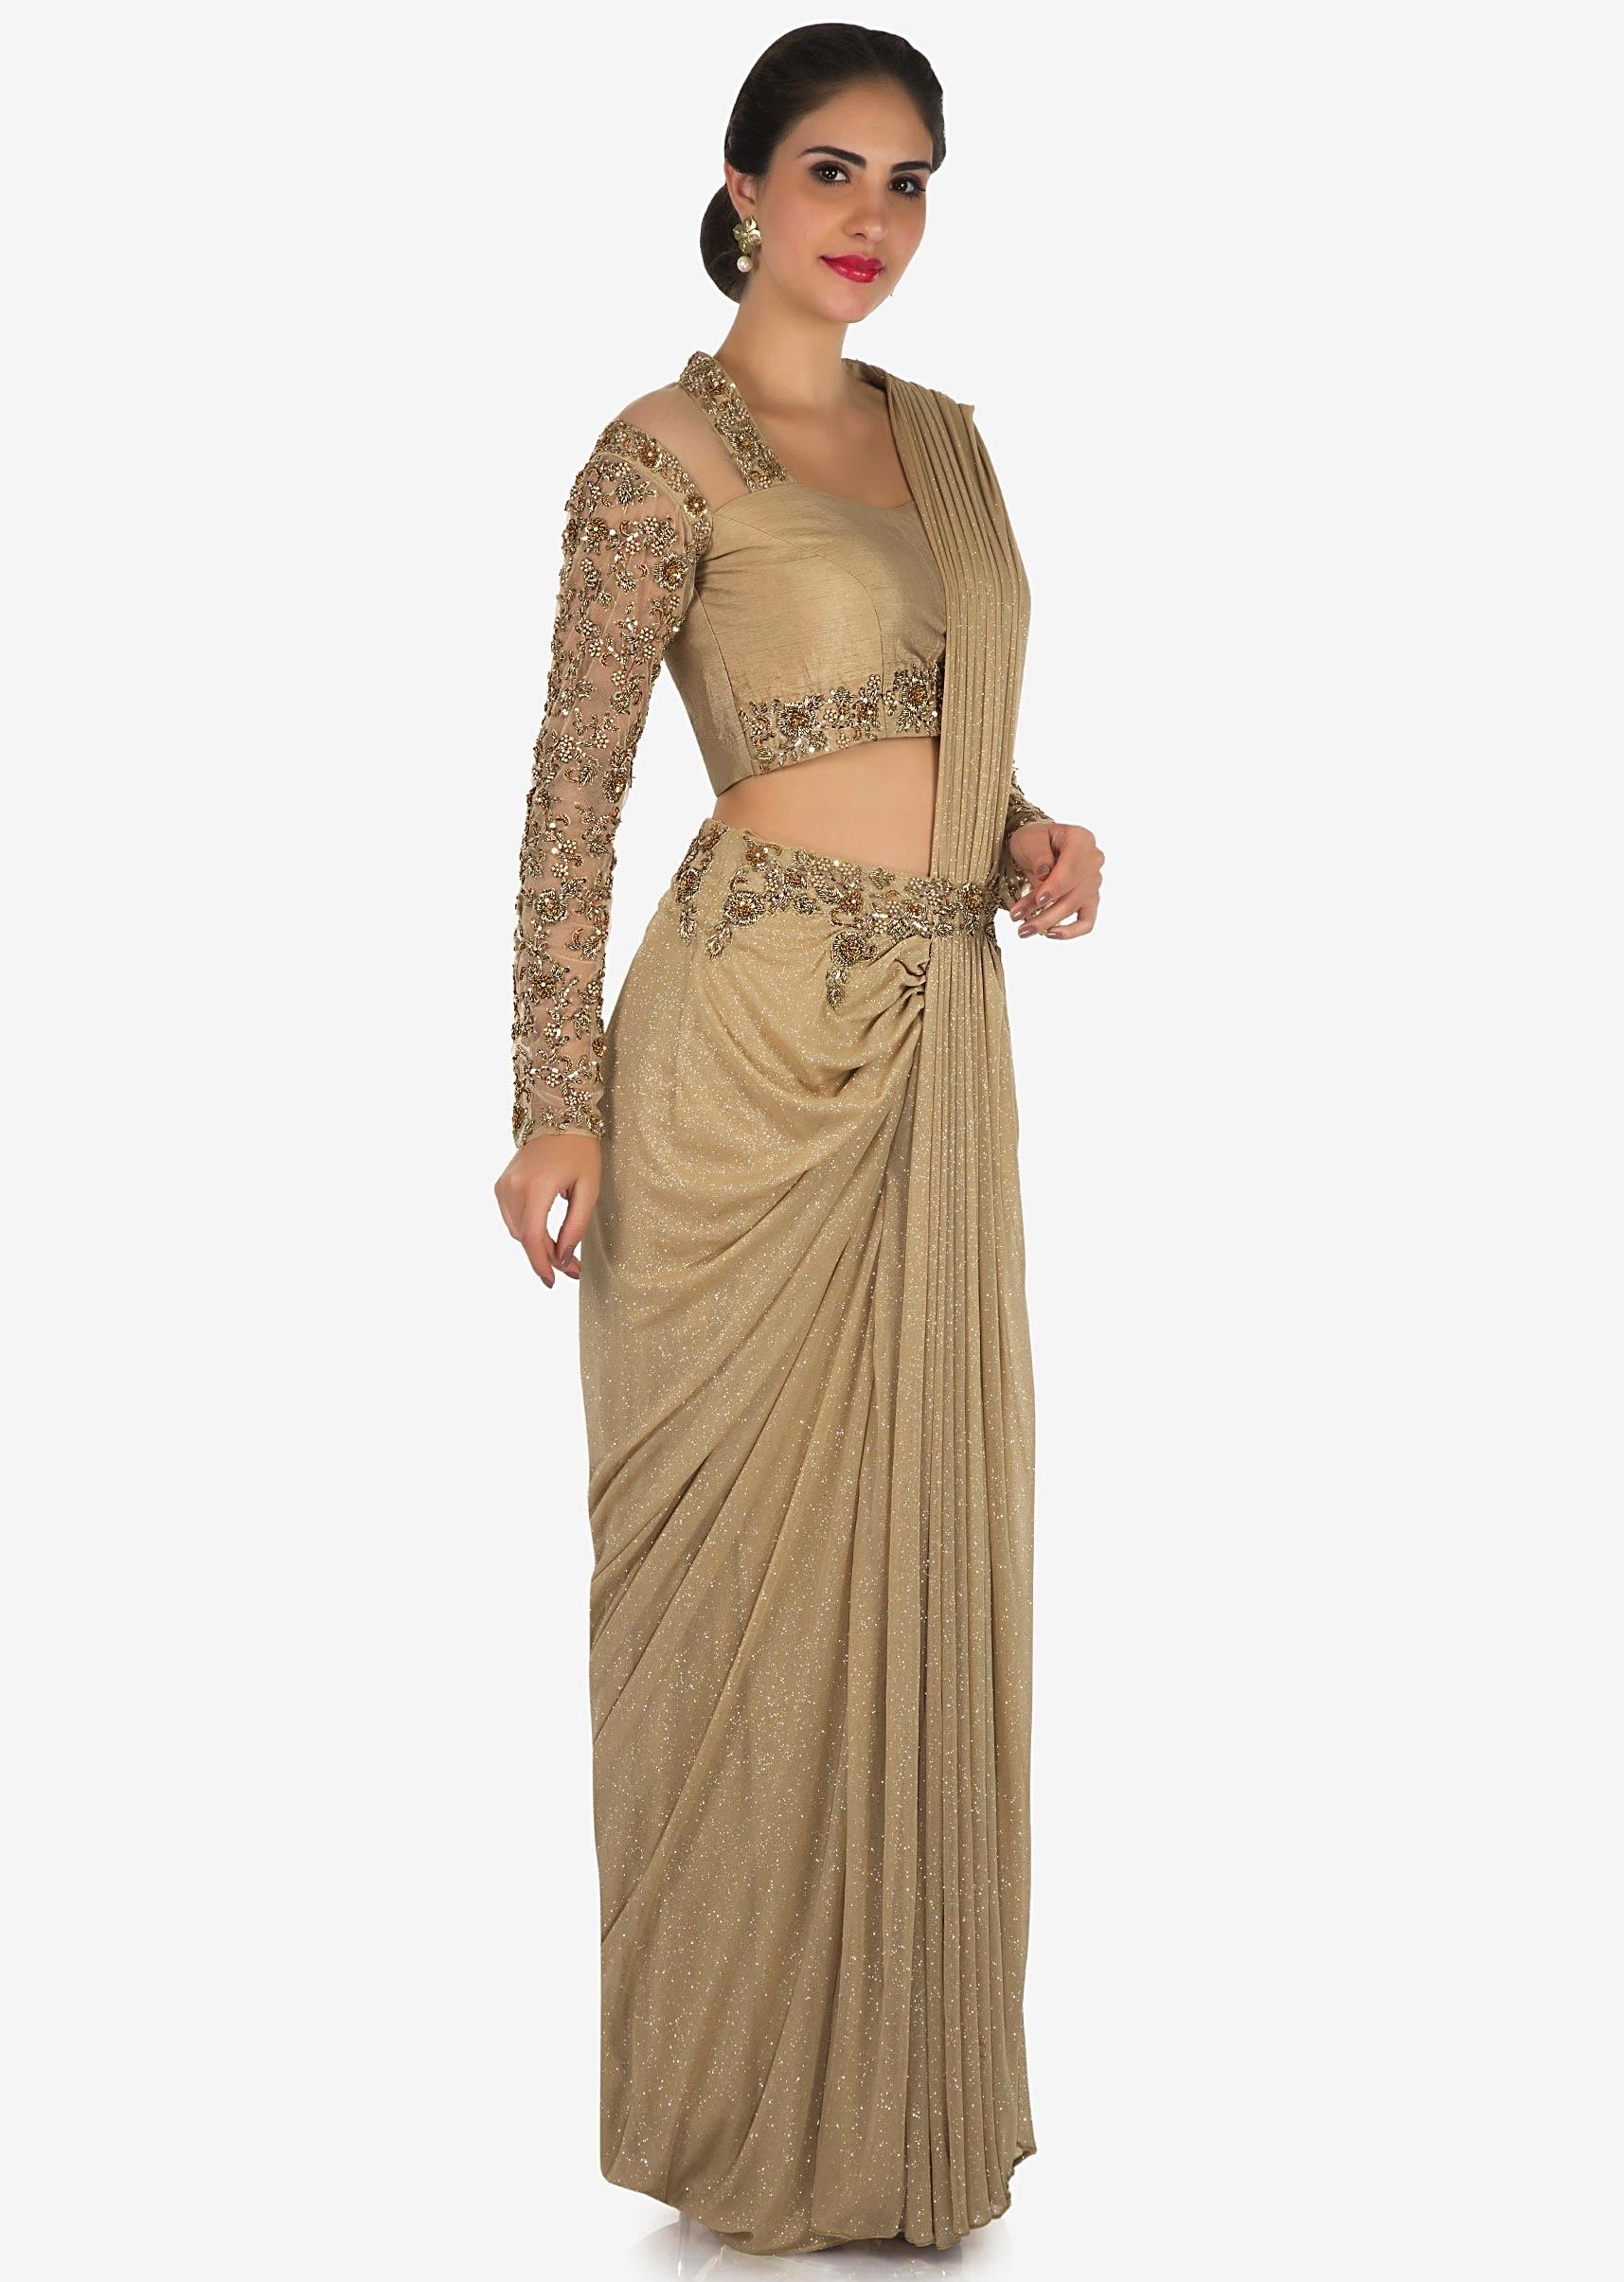 2243b10c09 Golden ready pleated saree in lycra heavily embellished in zardosi and moti  embroidery work only on Kalki